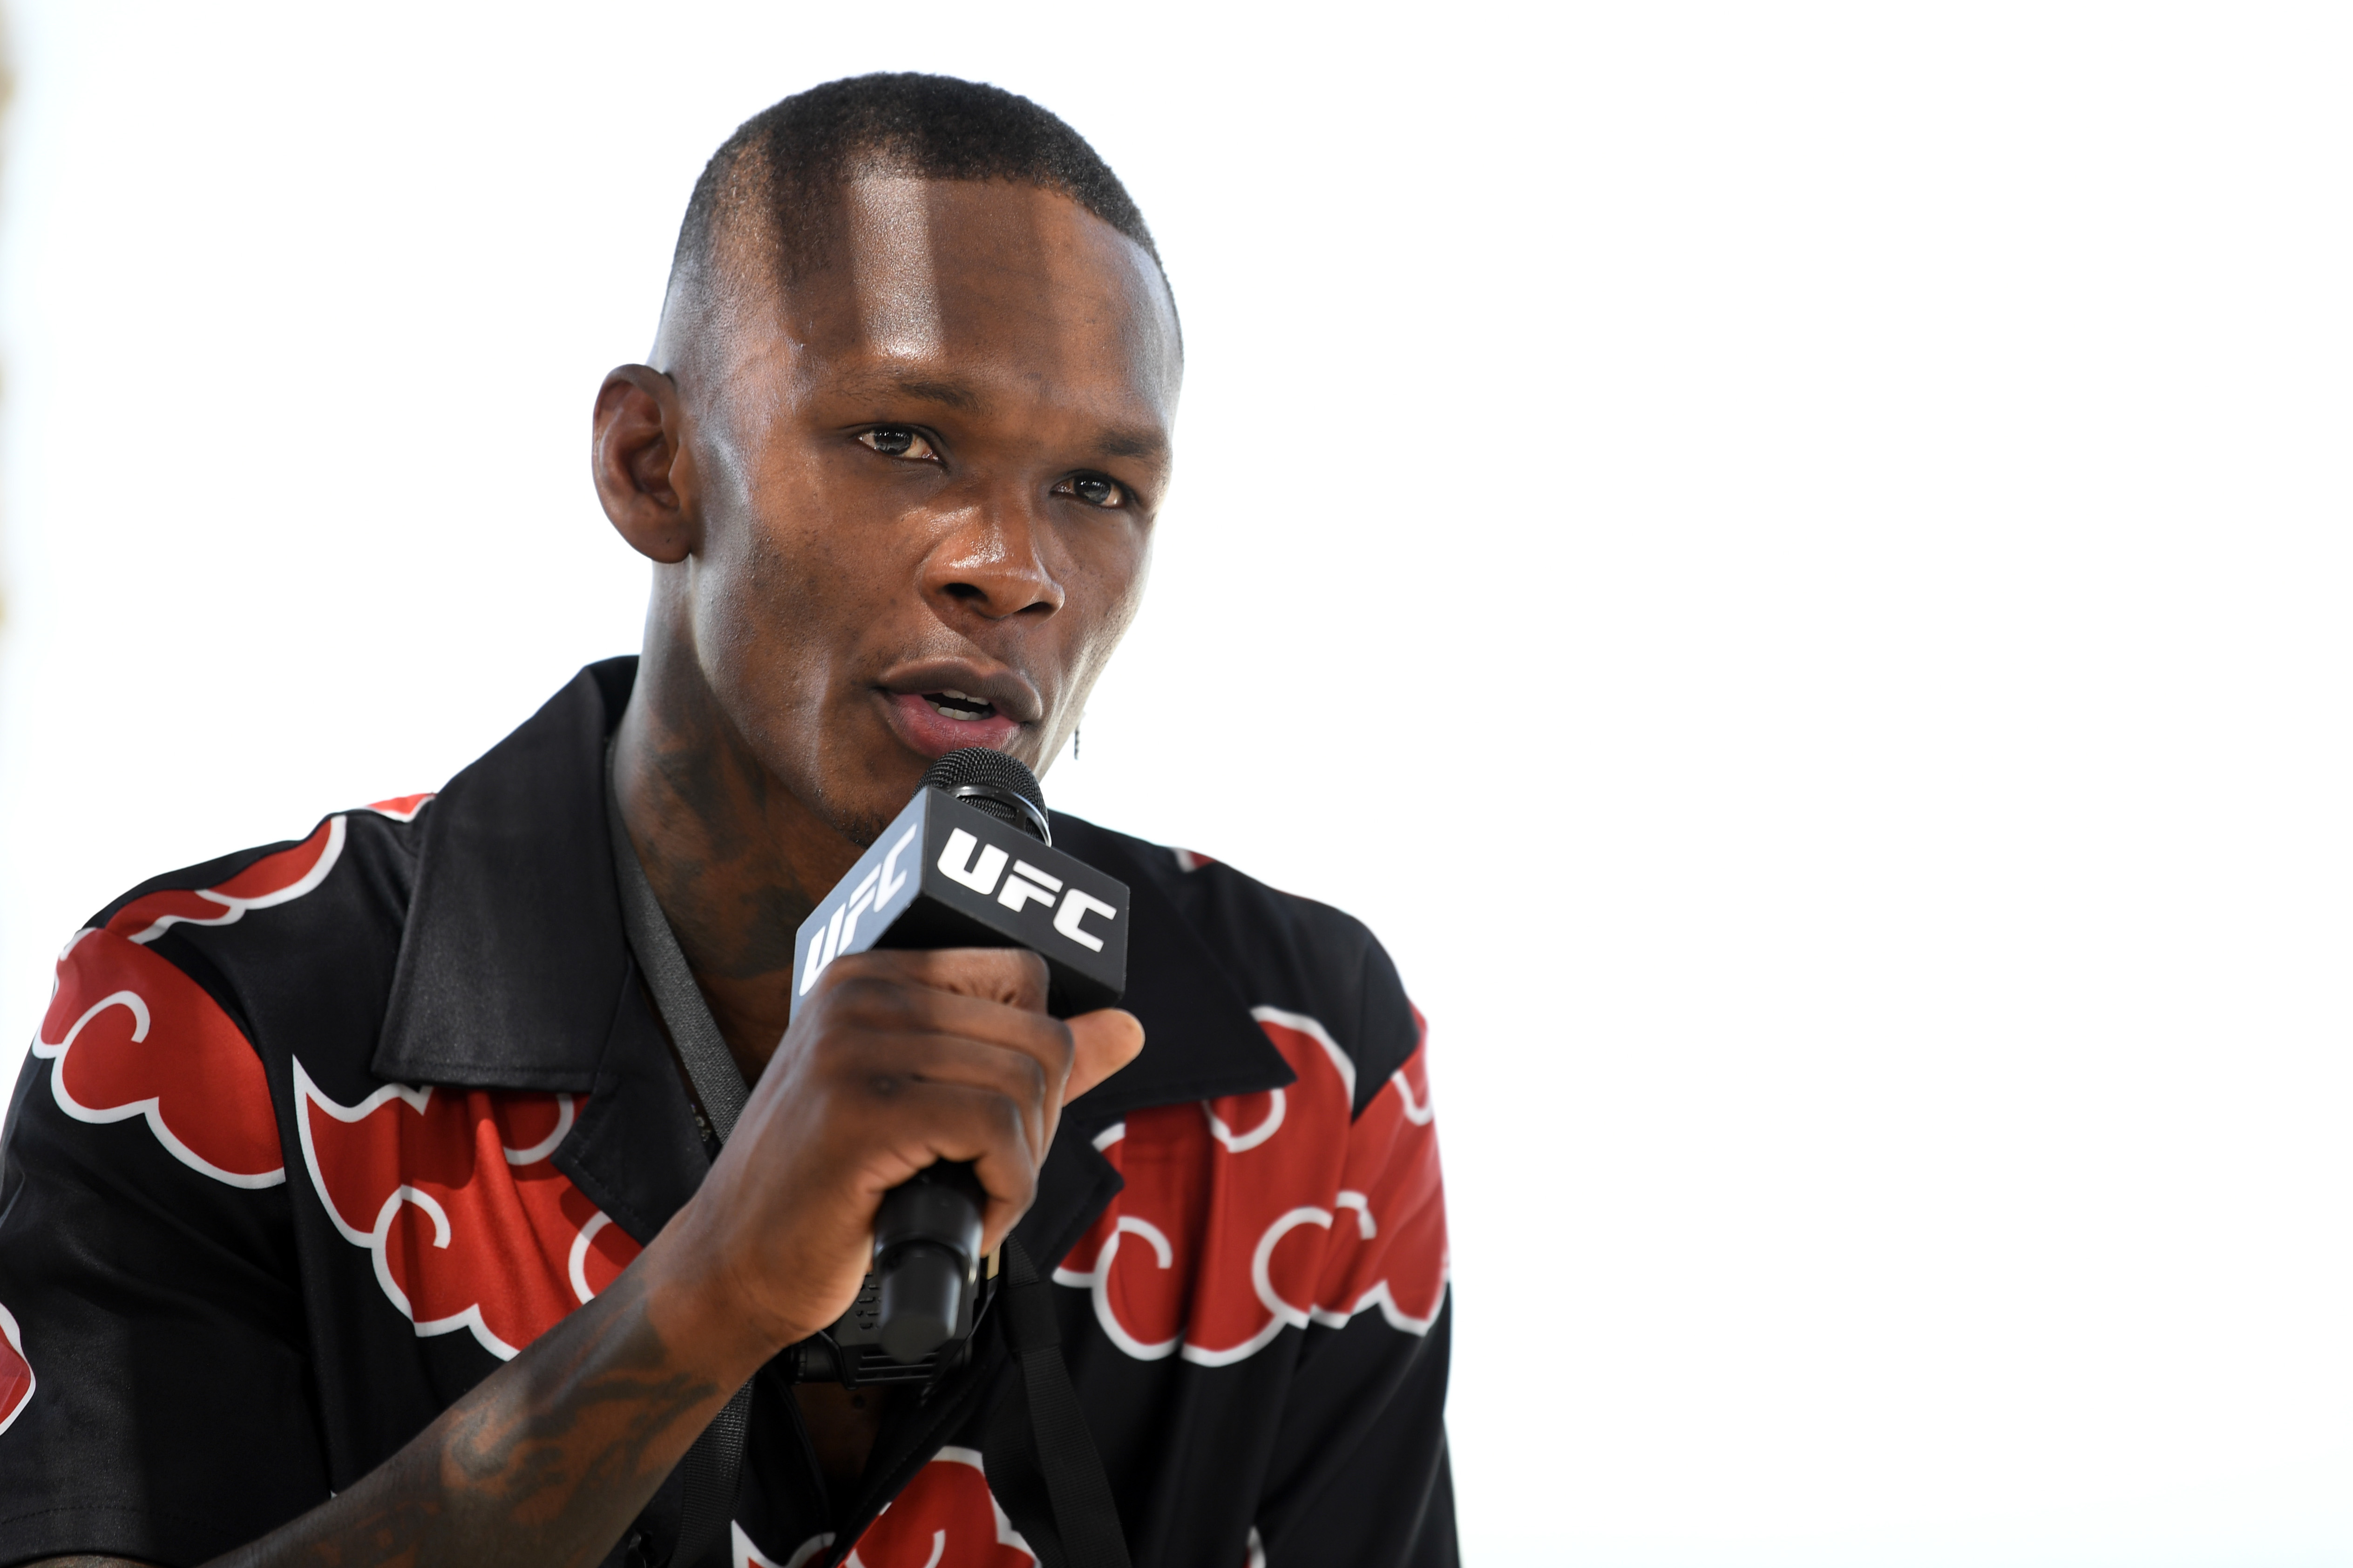 Israel Adesanya interacts with media